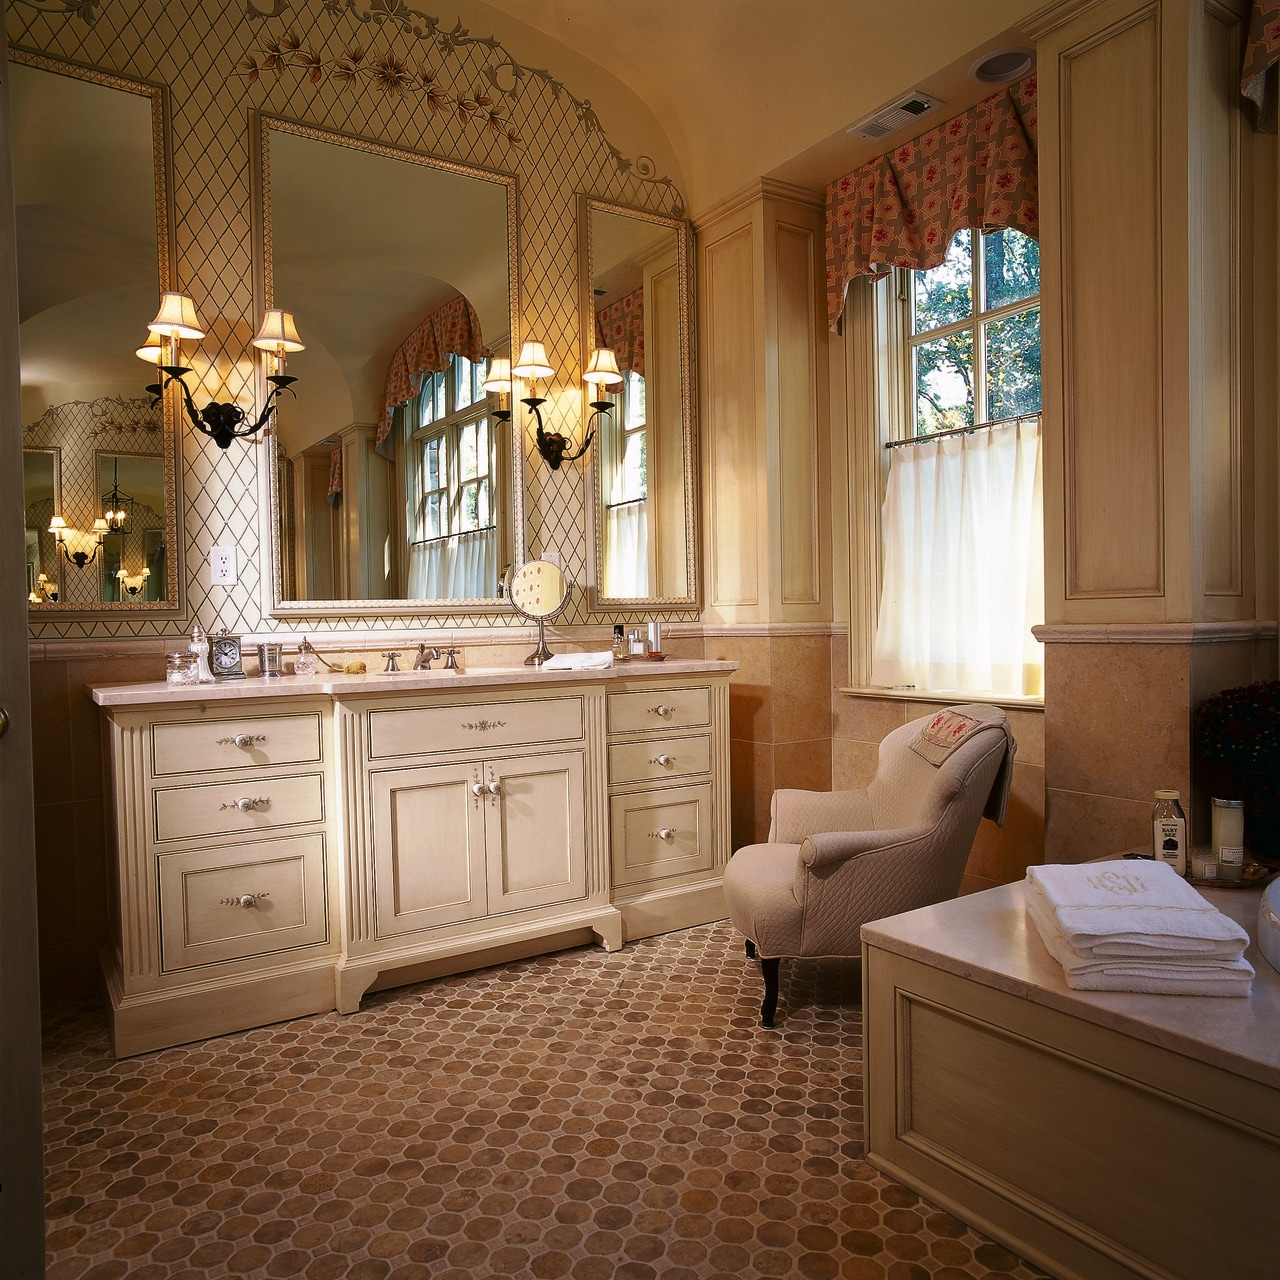 One end of this large bathroom bathroom, cabinetry, ceiling, estate, floor, flooring, home, interior design, room, wall, window, brown